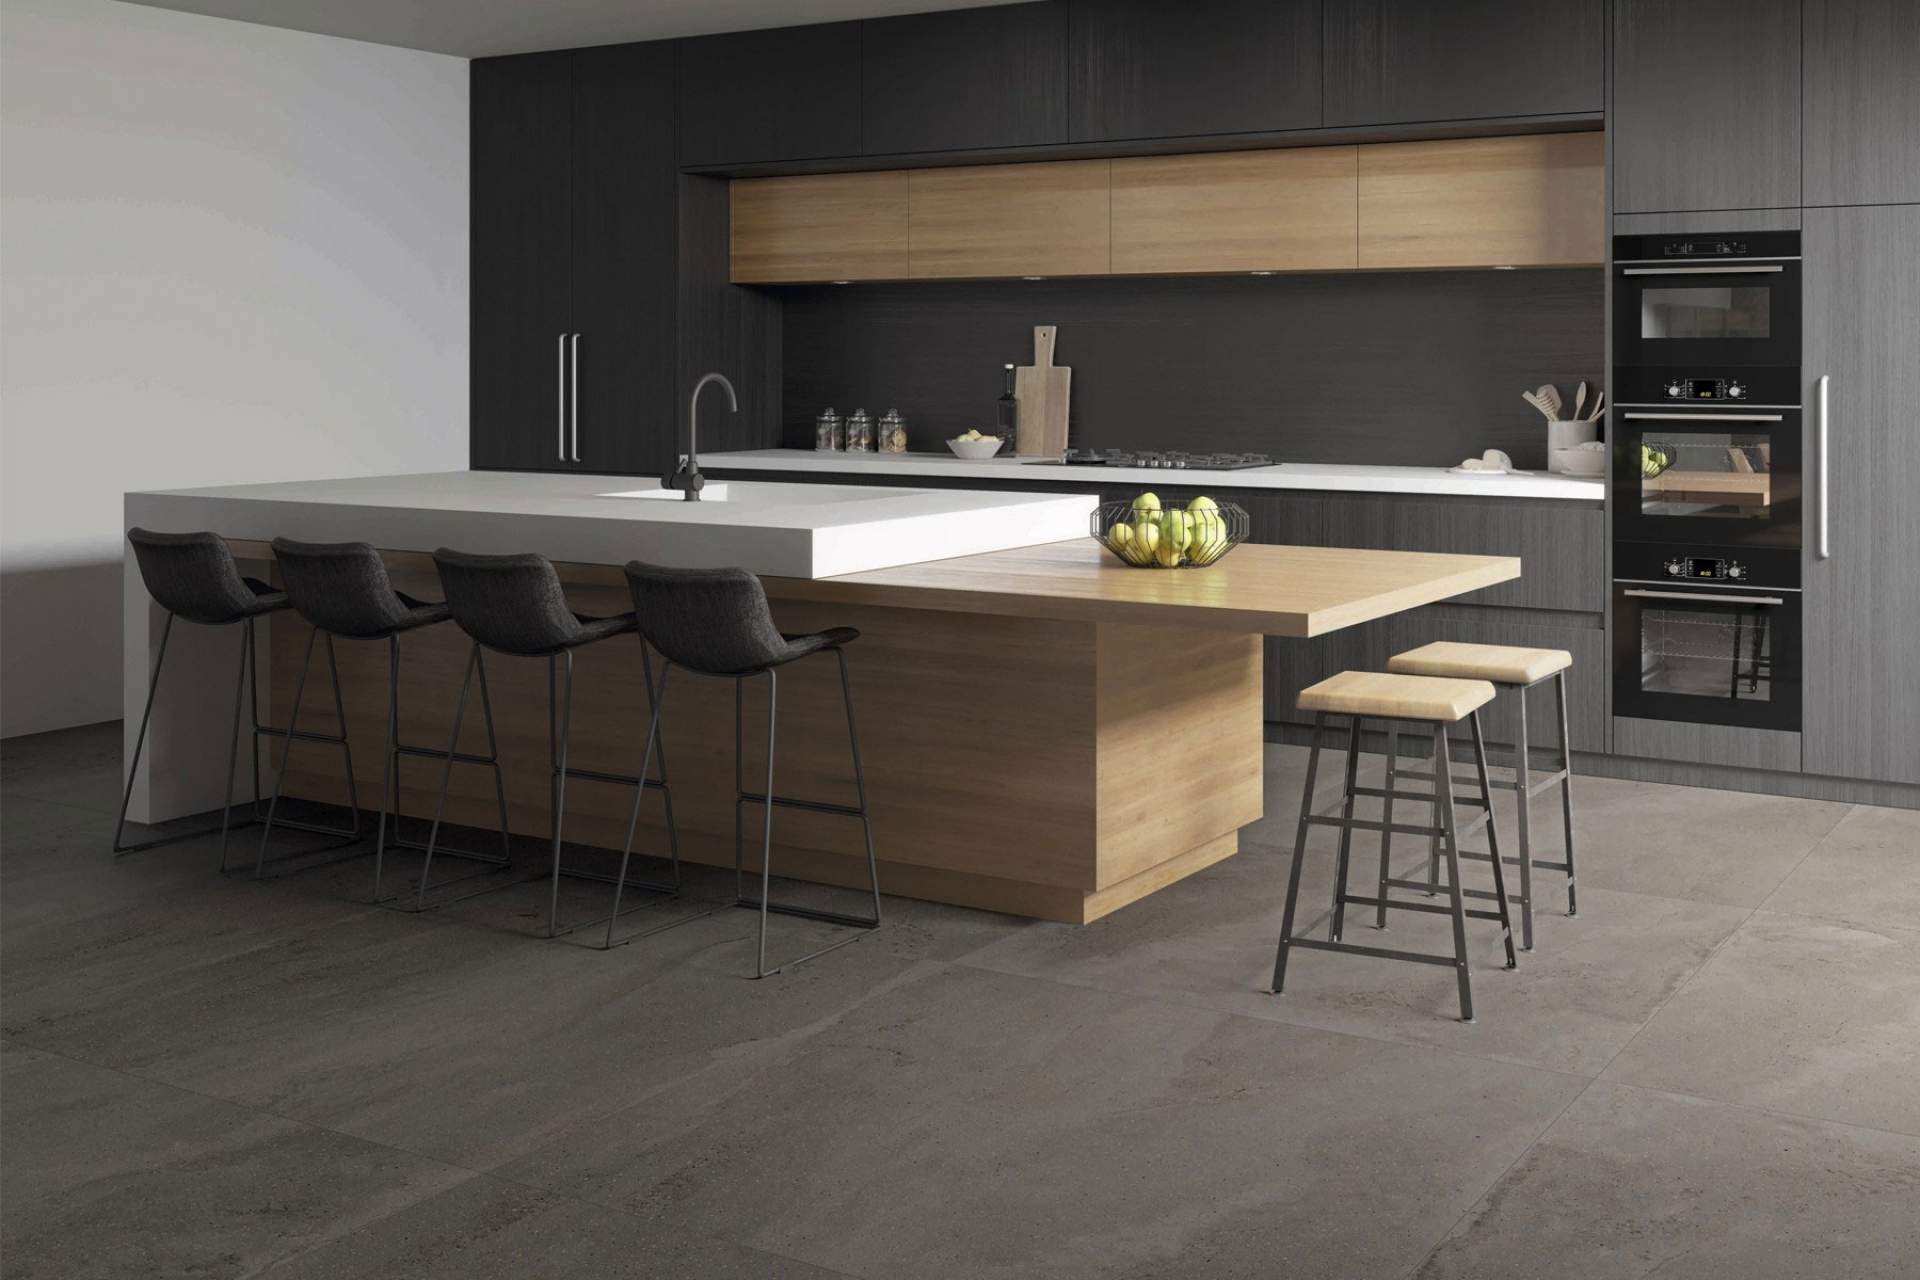 Fusion kitchen setting using grey natural 100 x 100 tile